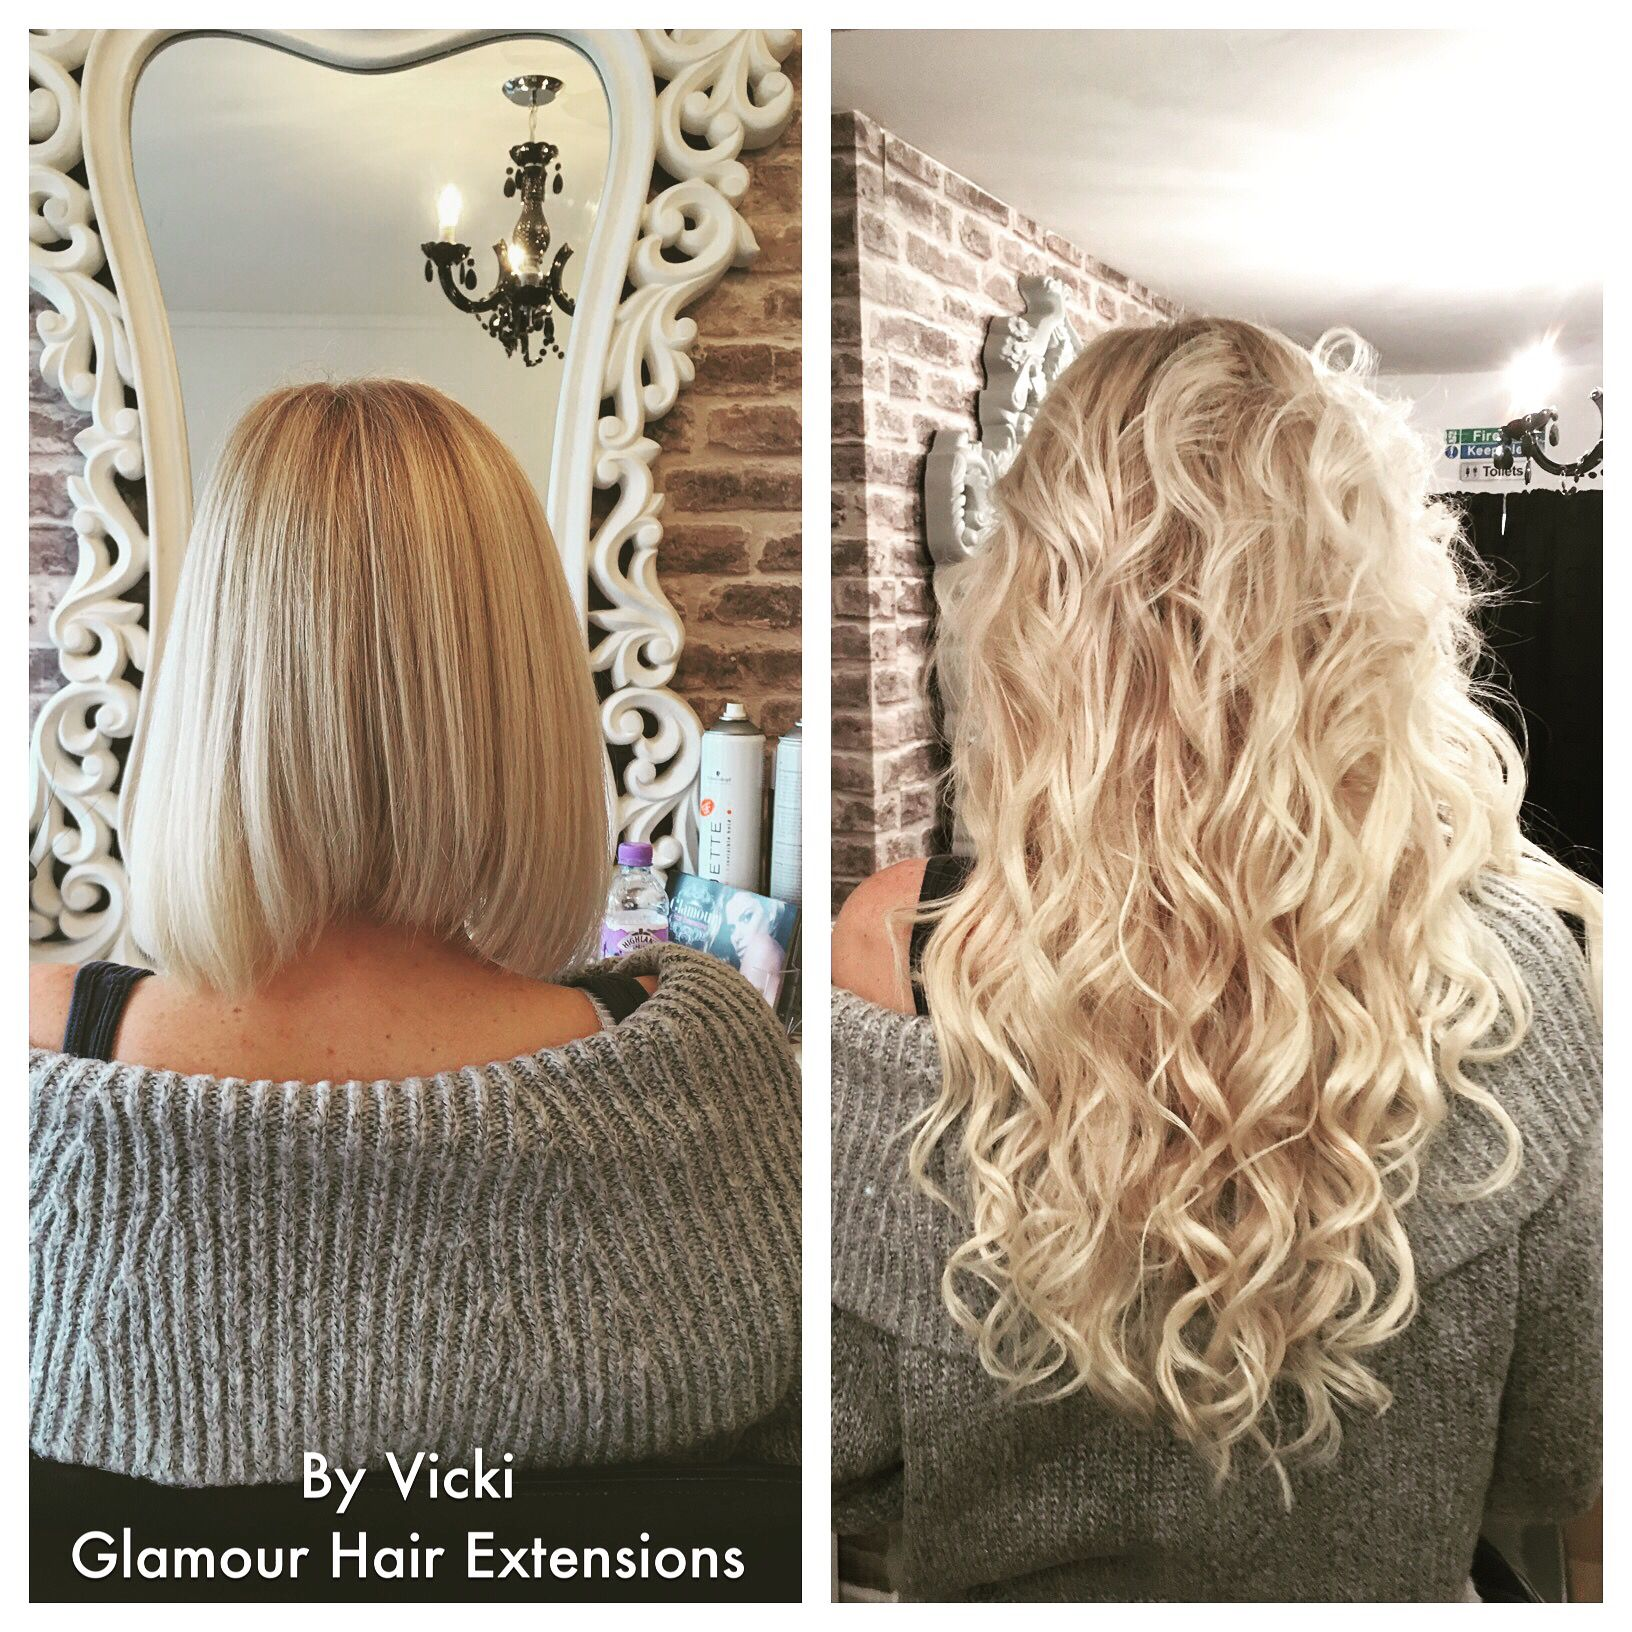 Hairextensions 18blonde before and after microbead remy indian hairextensions 18blonde before and after microbead remy indian hair glamour hair extension centre pmusecretfo Gallery